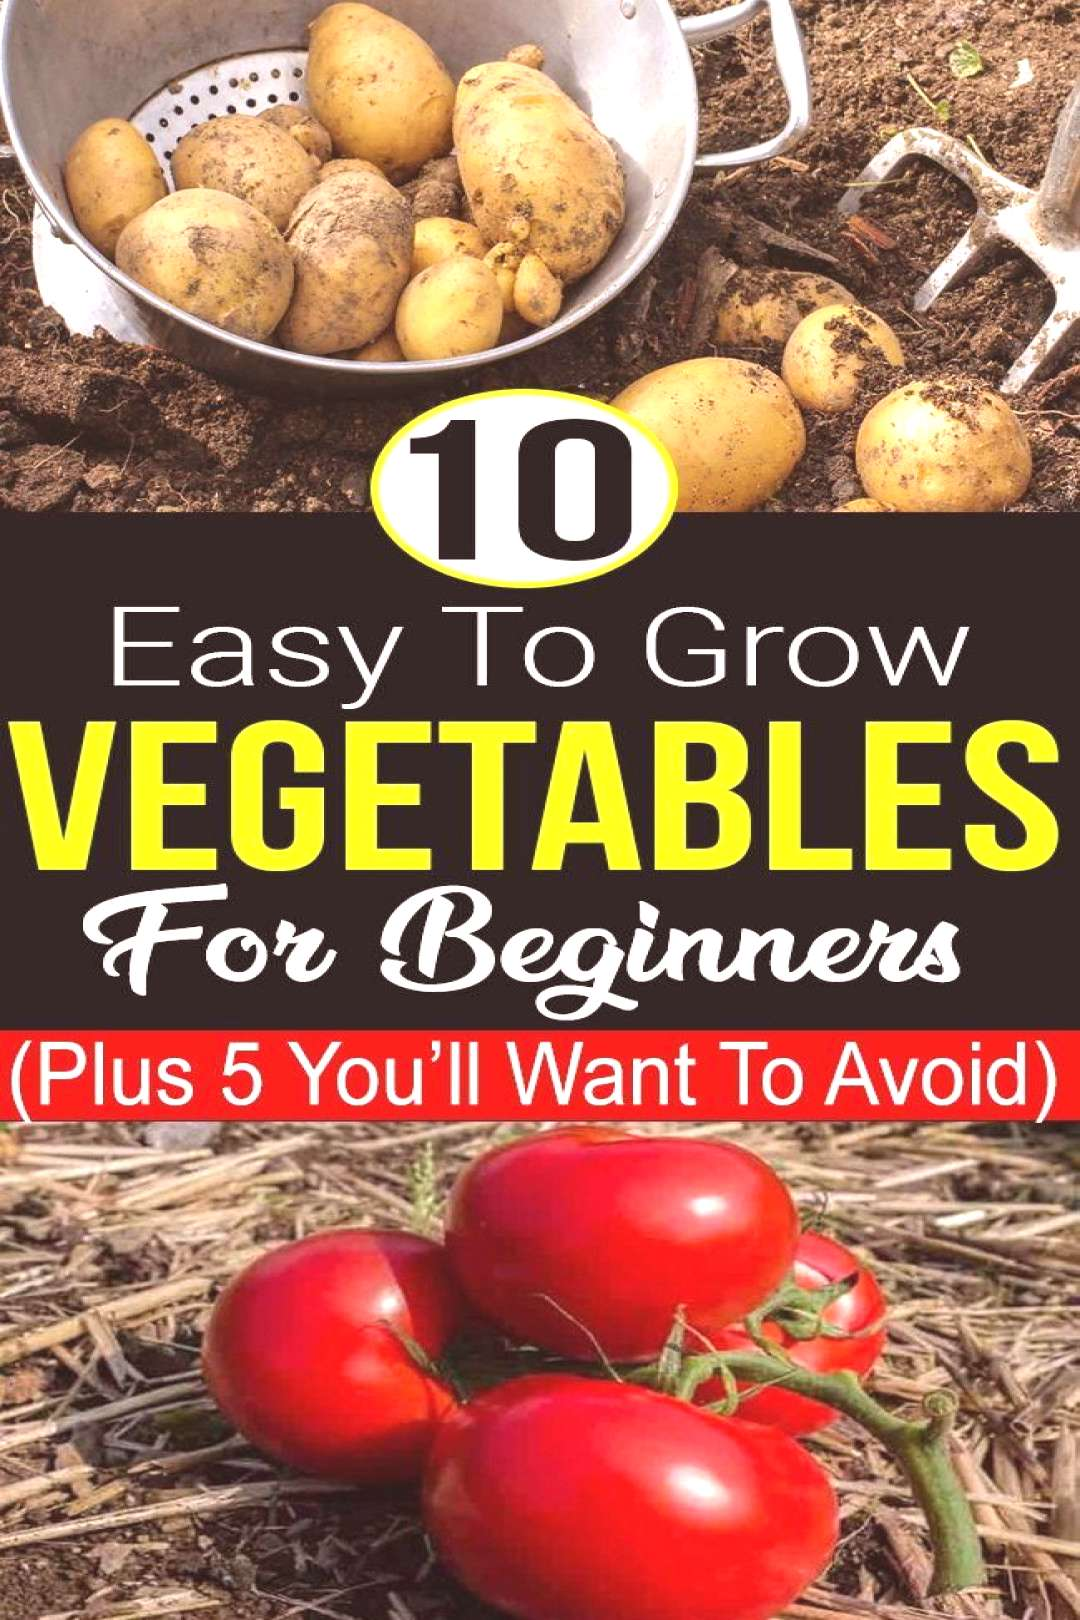 Growing your own vegetables in your garden is fun as well as scary when you don't know h